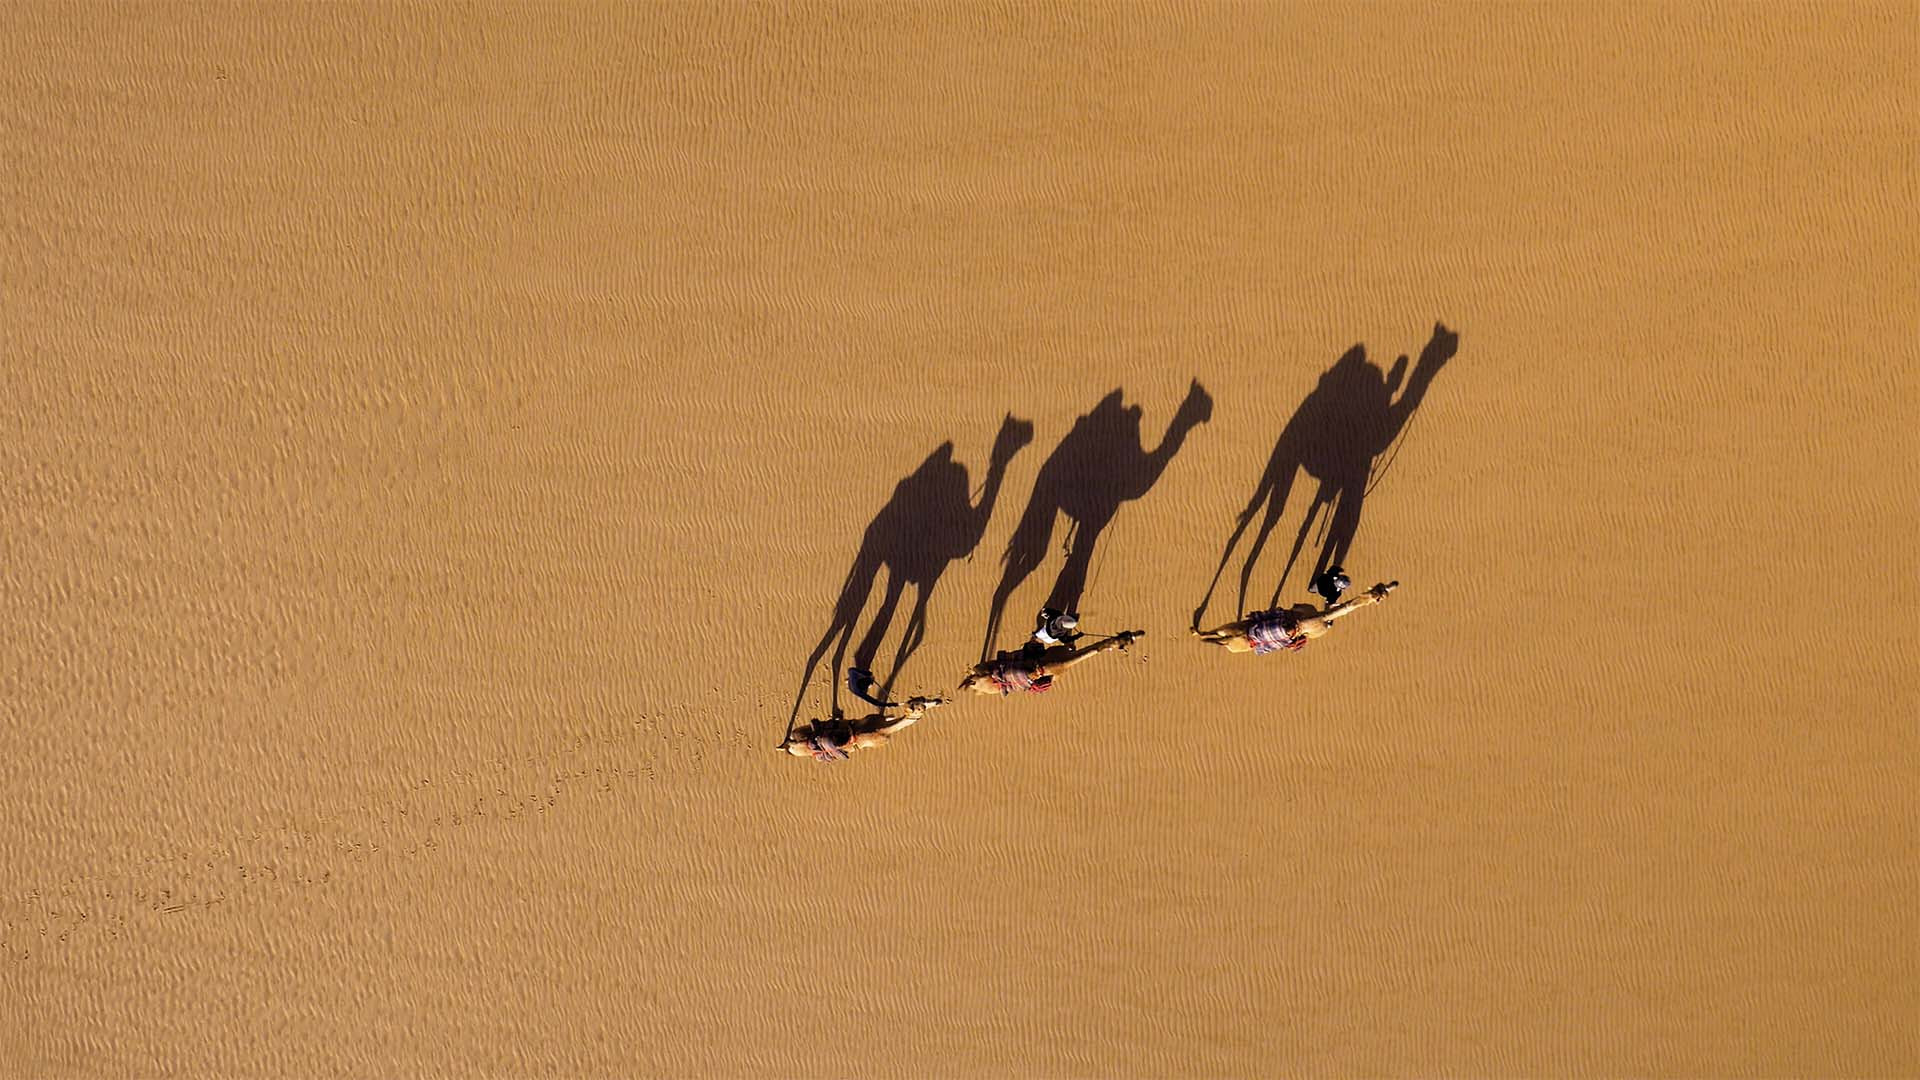 Drone photo of camels and shadows in Oman from Drone Photography Masterclass